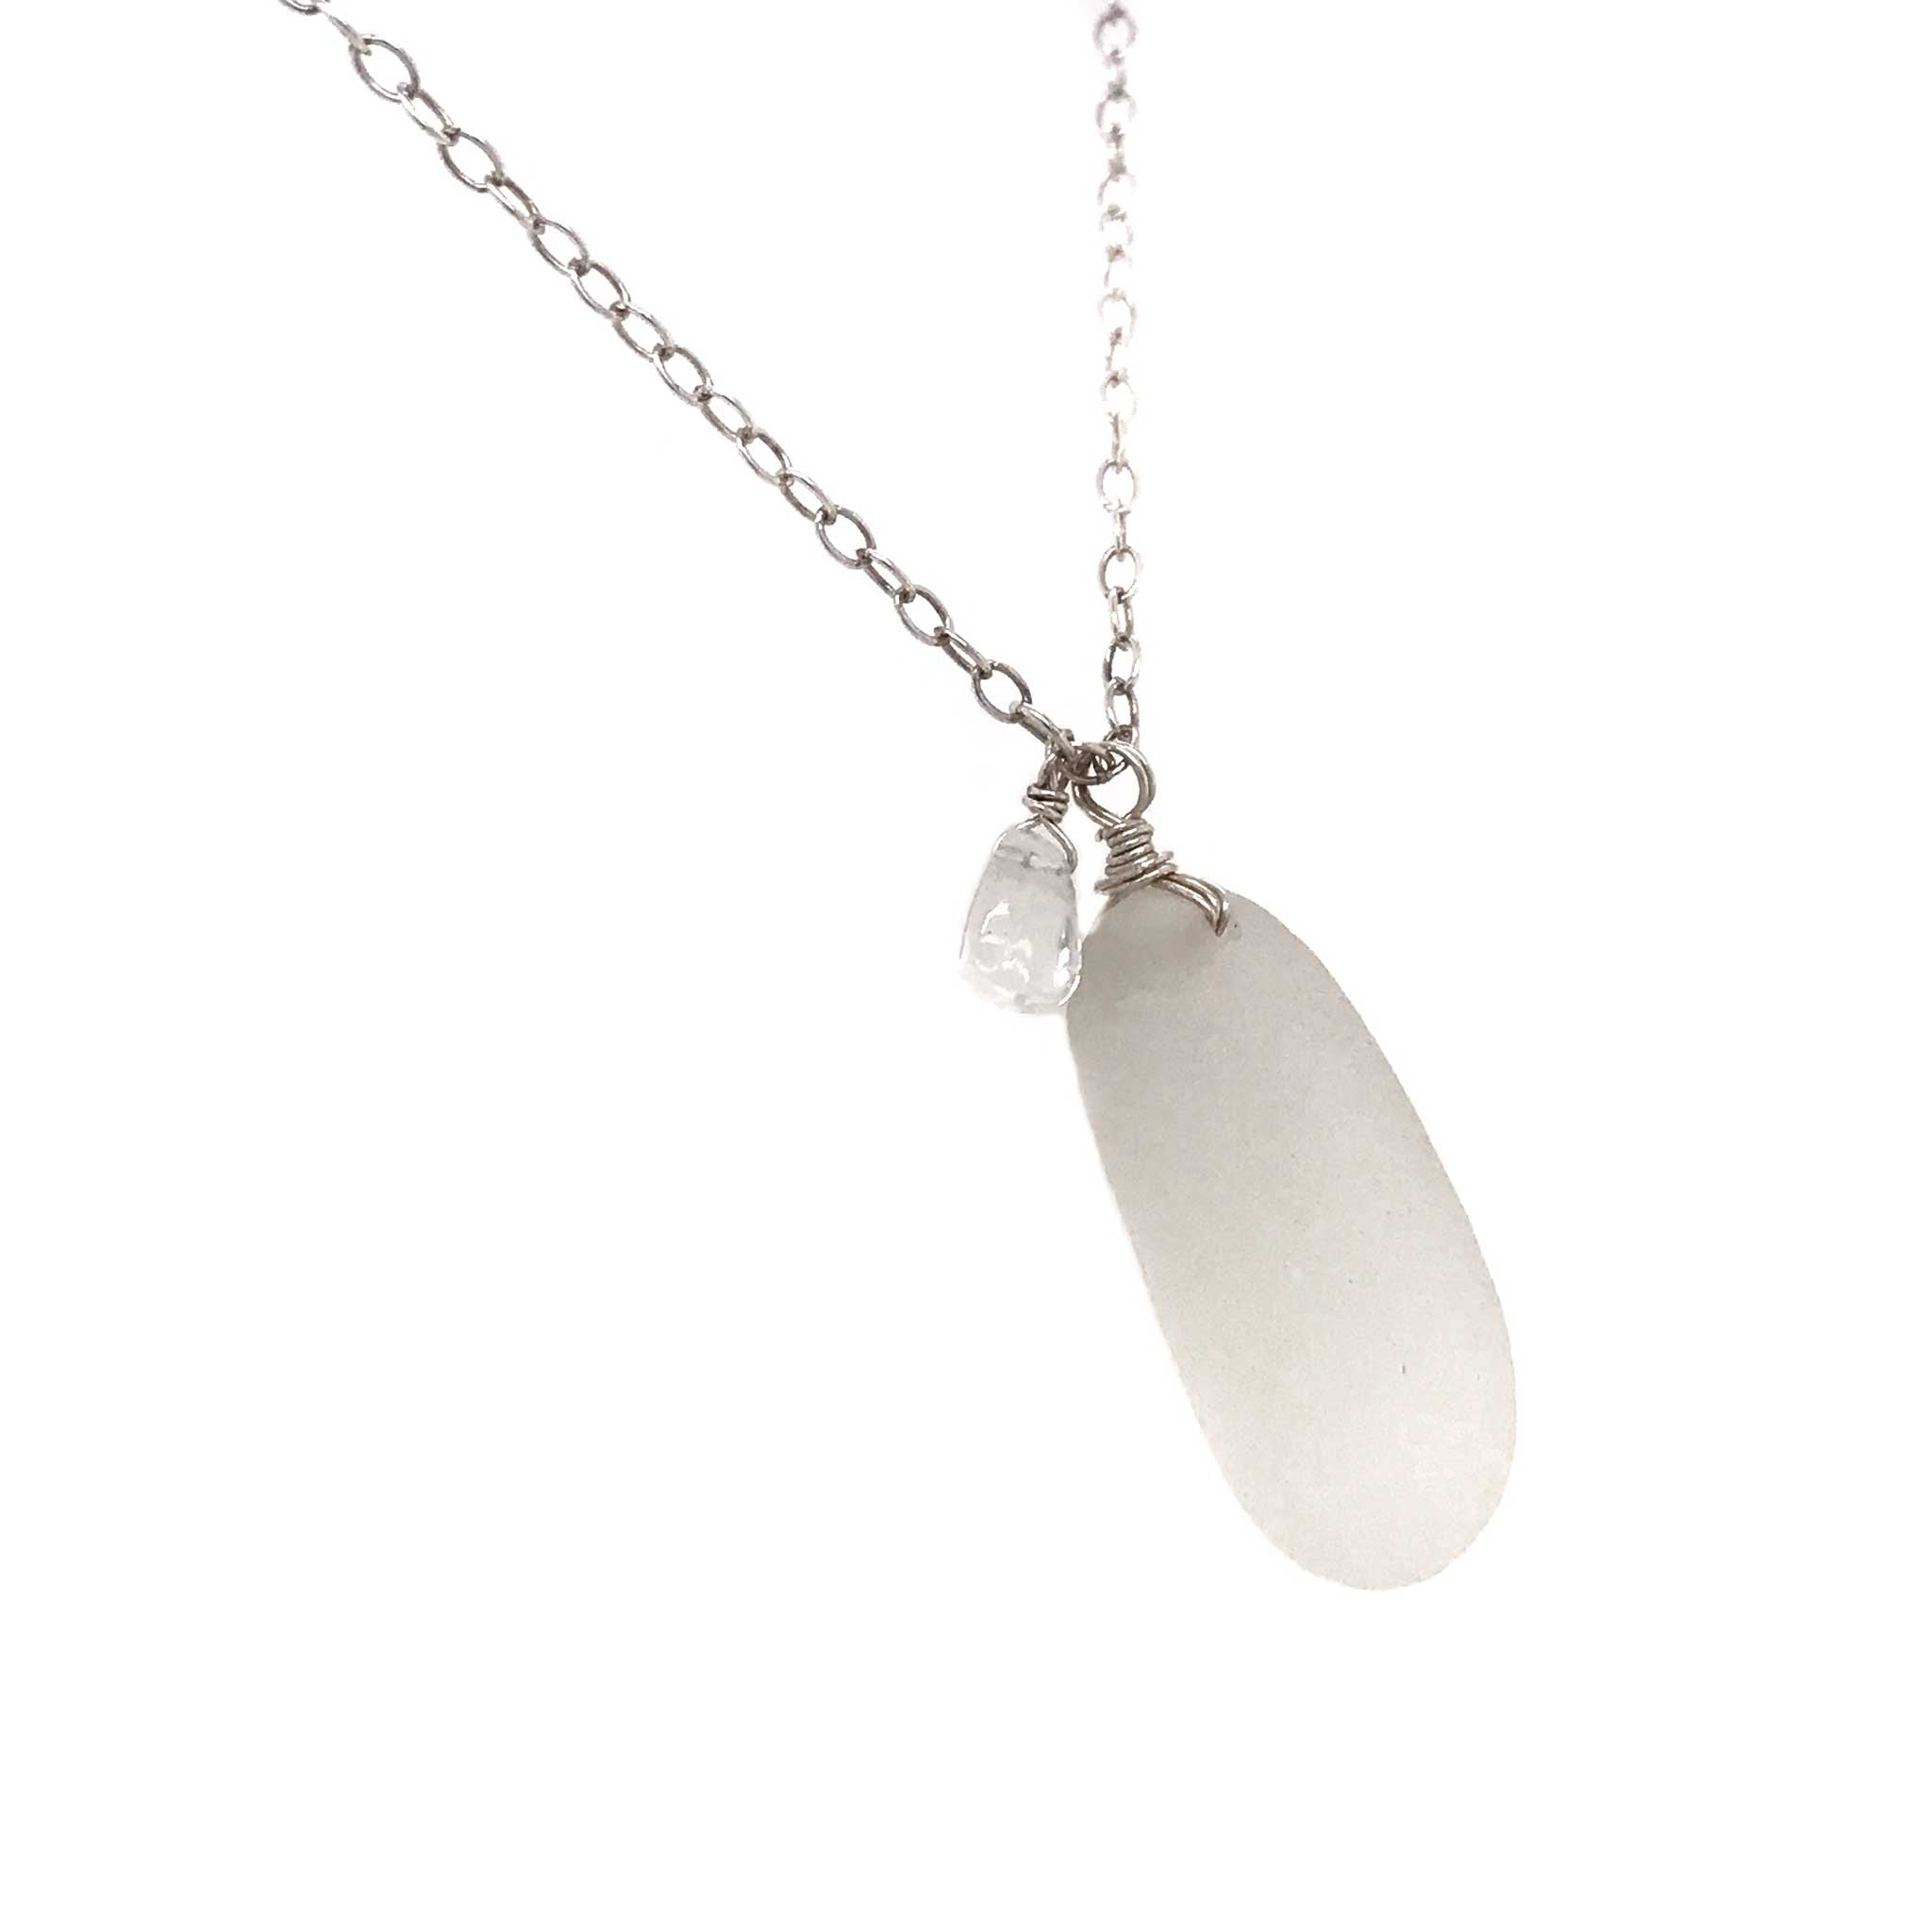 clear sea glass necklace sterling silver chain large teardrop aquamarine stone kriket broadhurst jewellery Sydney